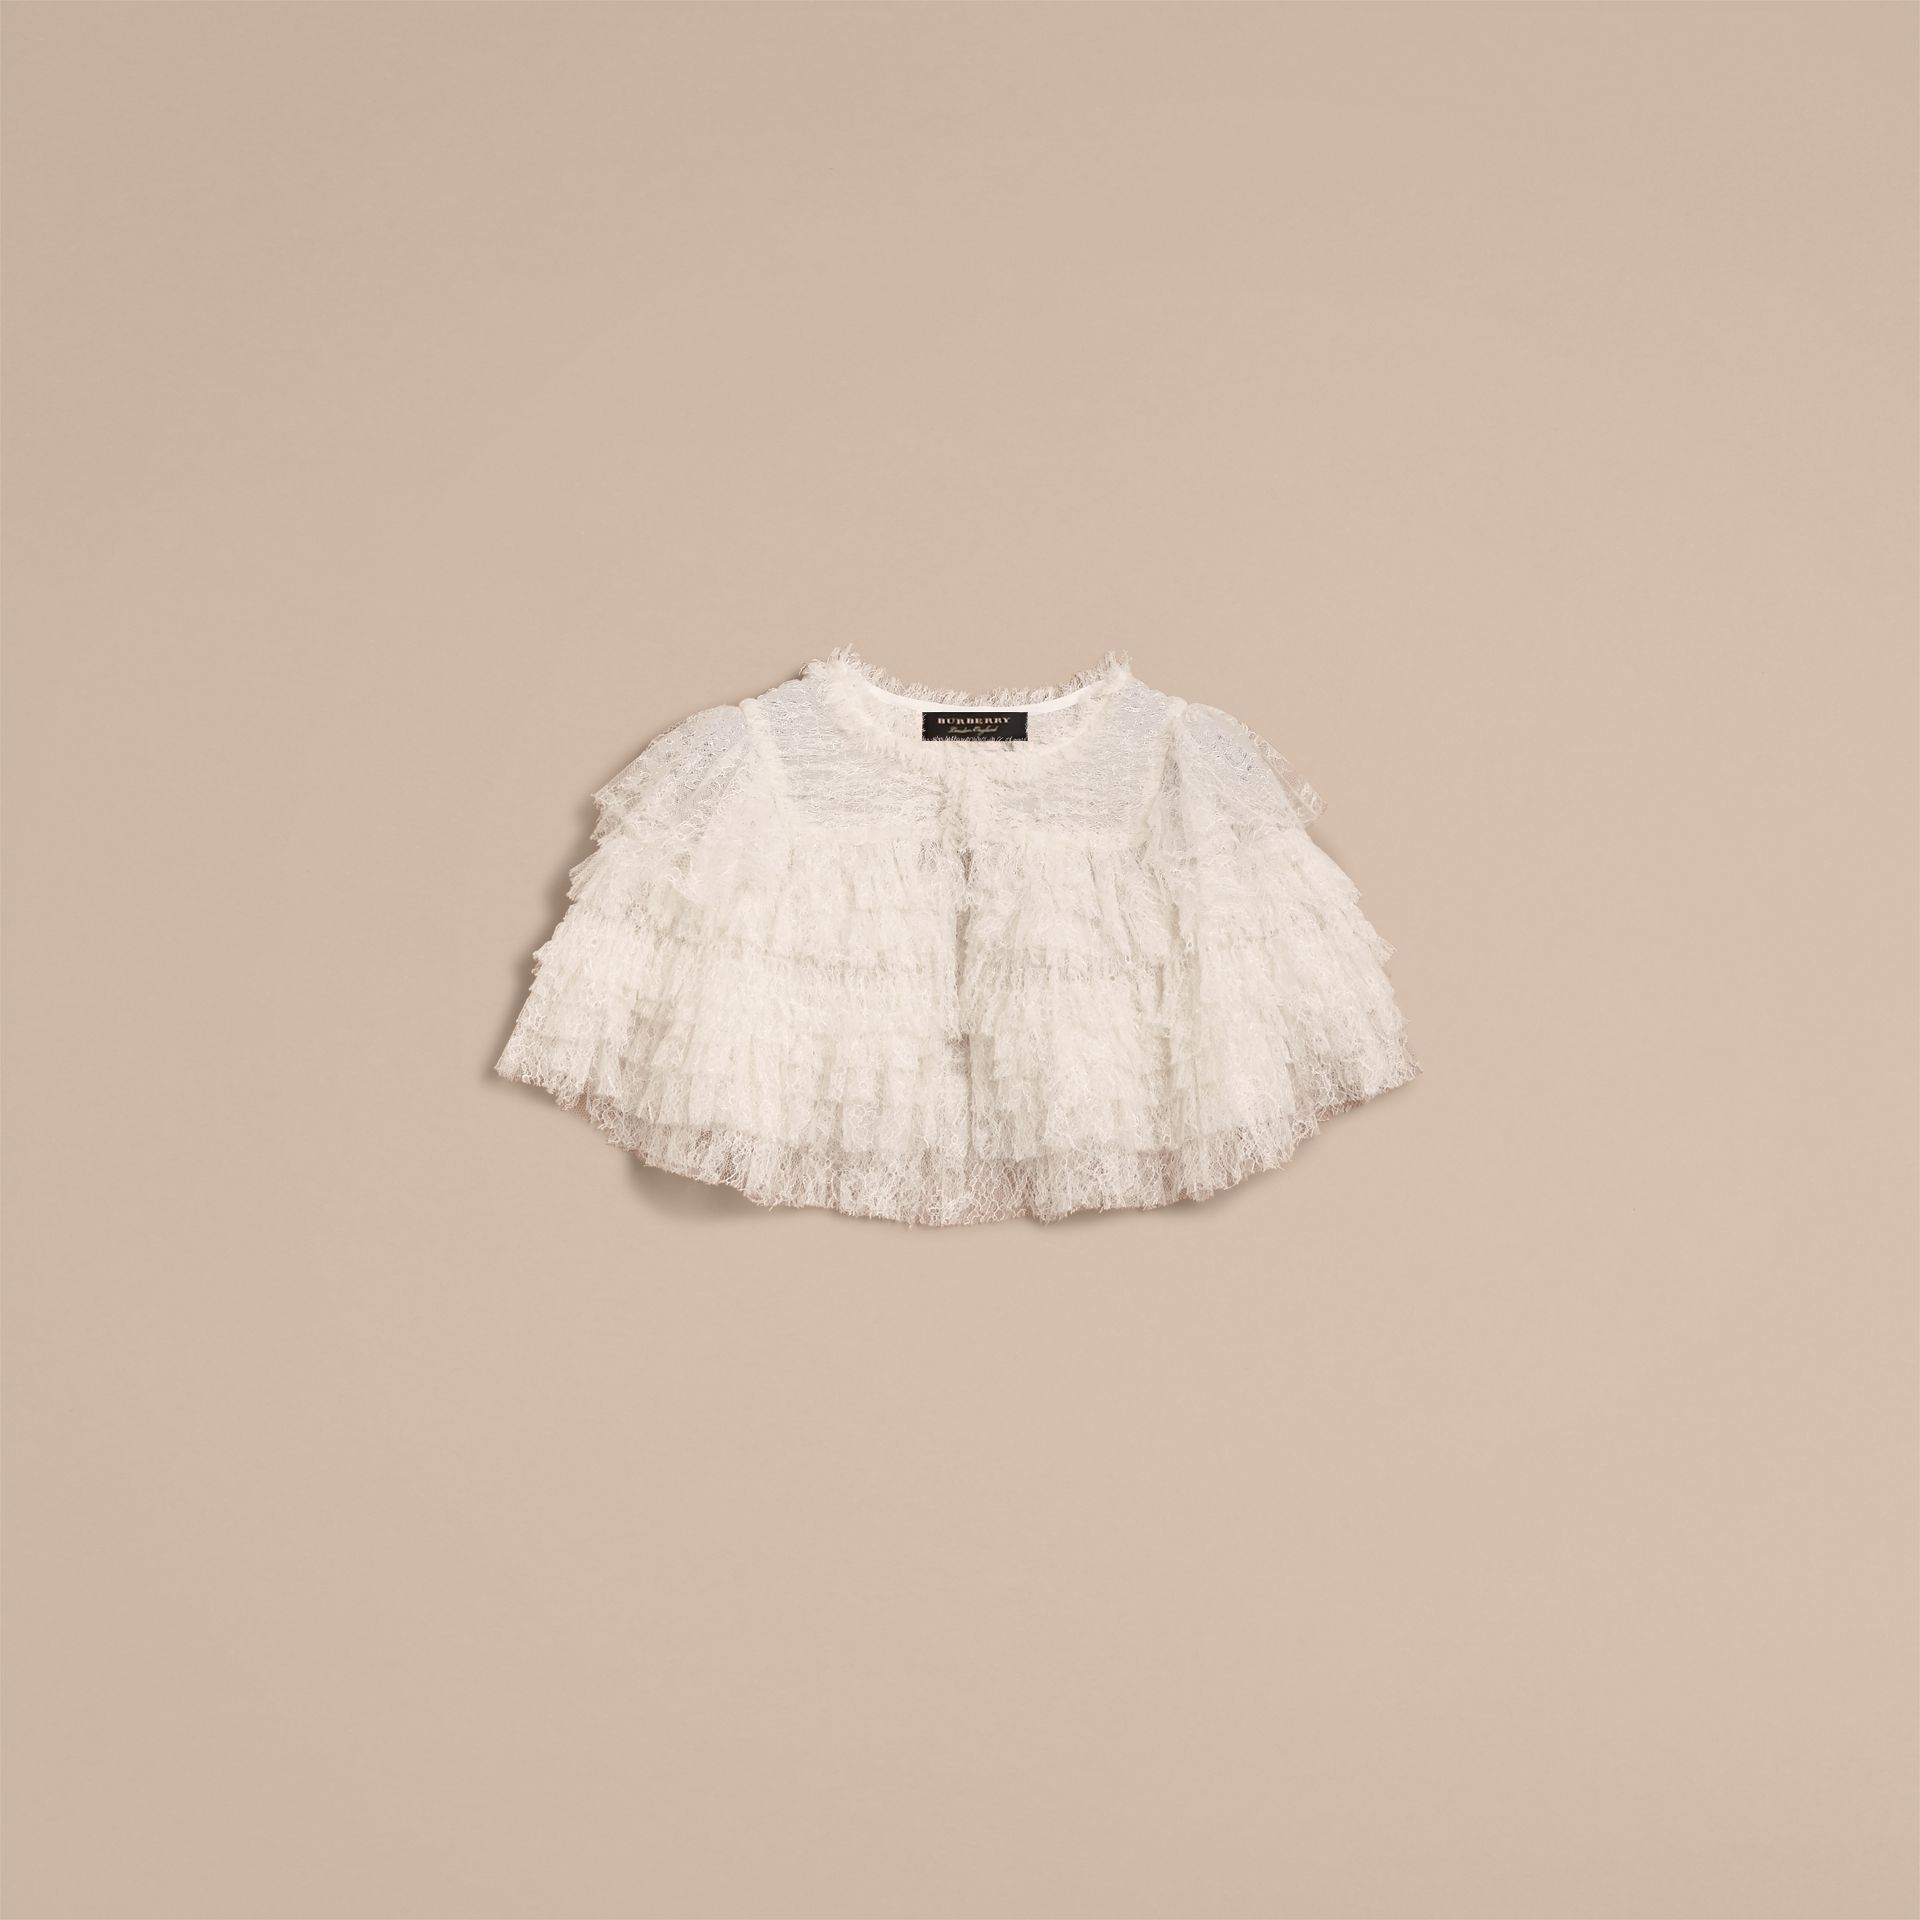 Tiered Lace Capelet in Natural White - Women | Burberry - gallery image 4